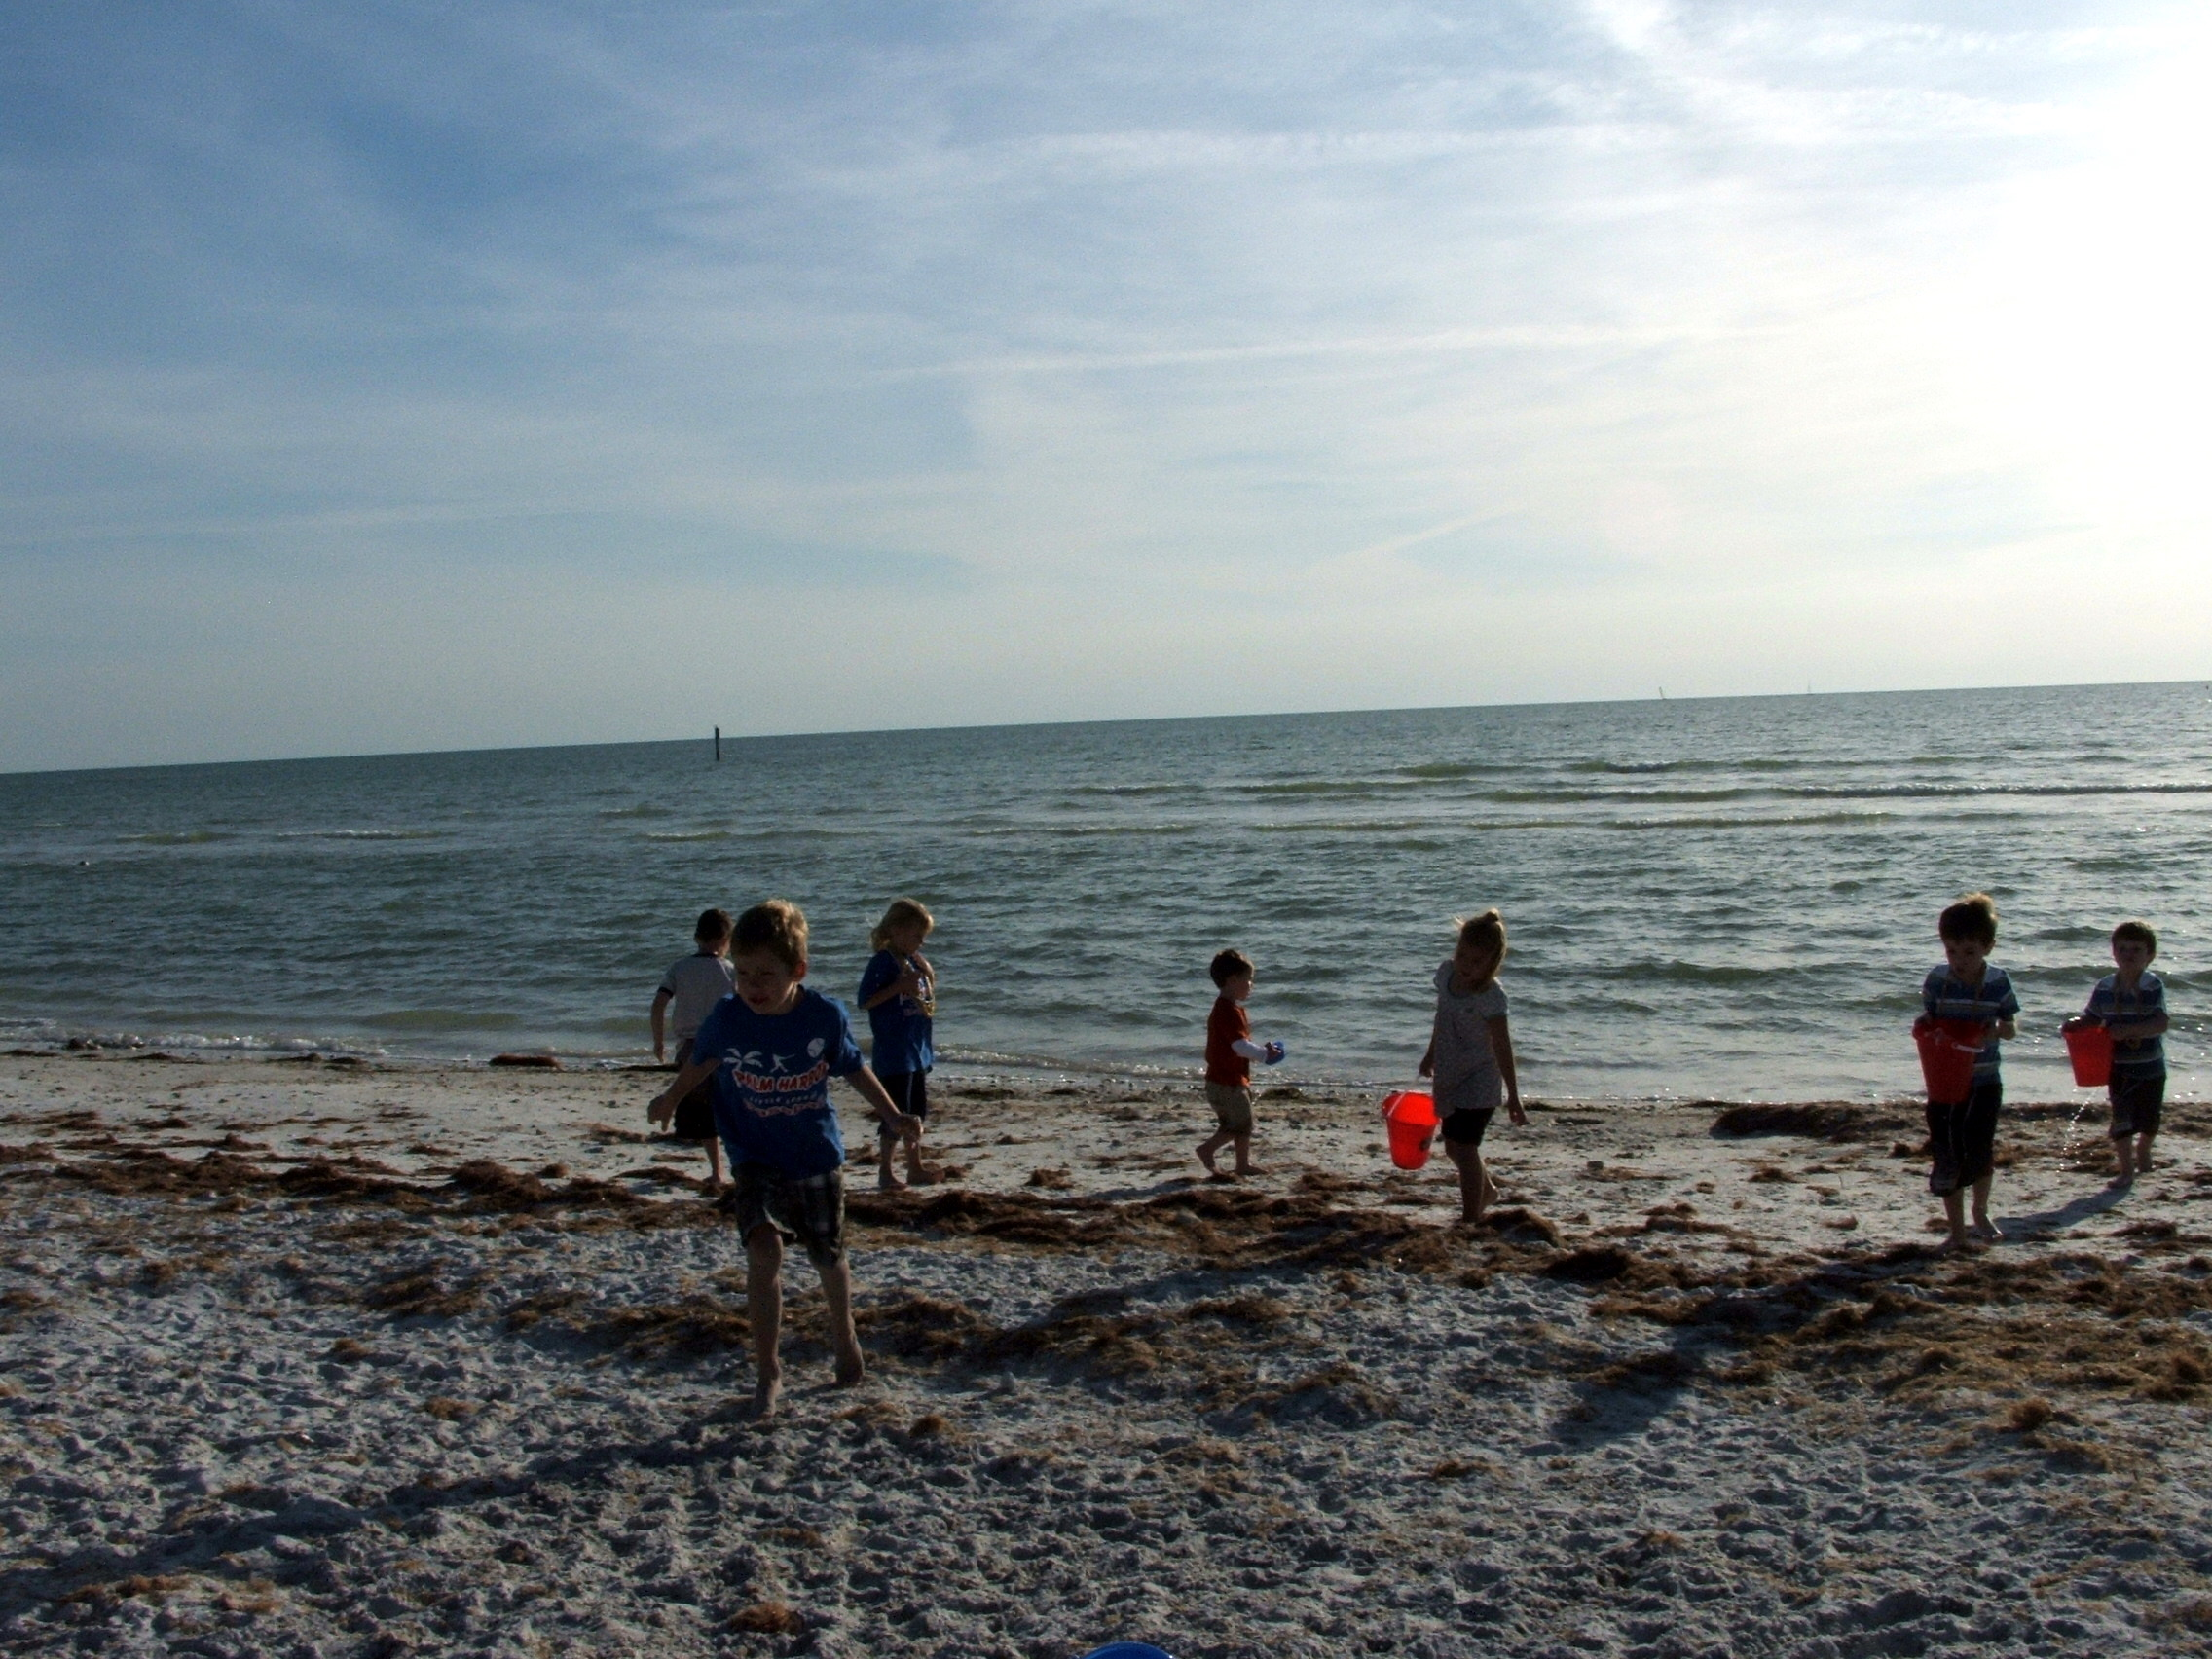 Honeymoon Island stopover for the 6th annual Dunedin Triathalon … yet another reason Dunedin home owners to rejoice